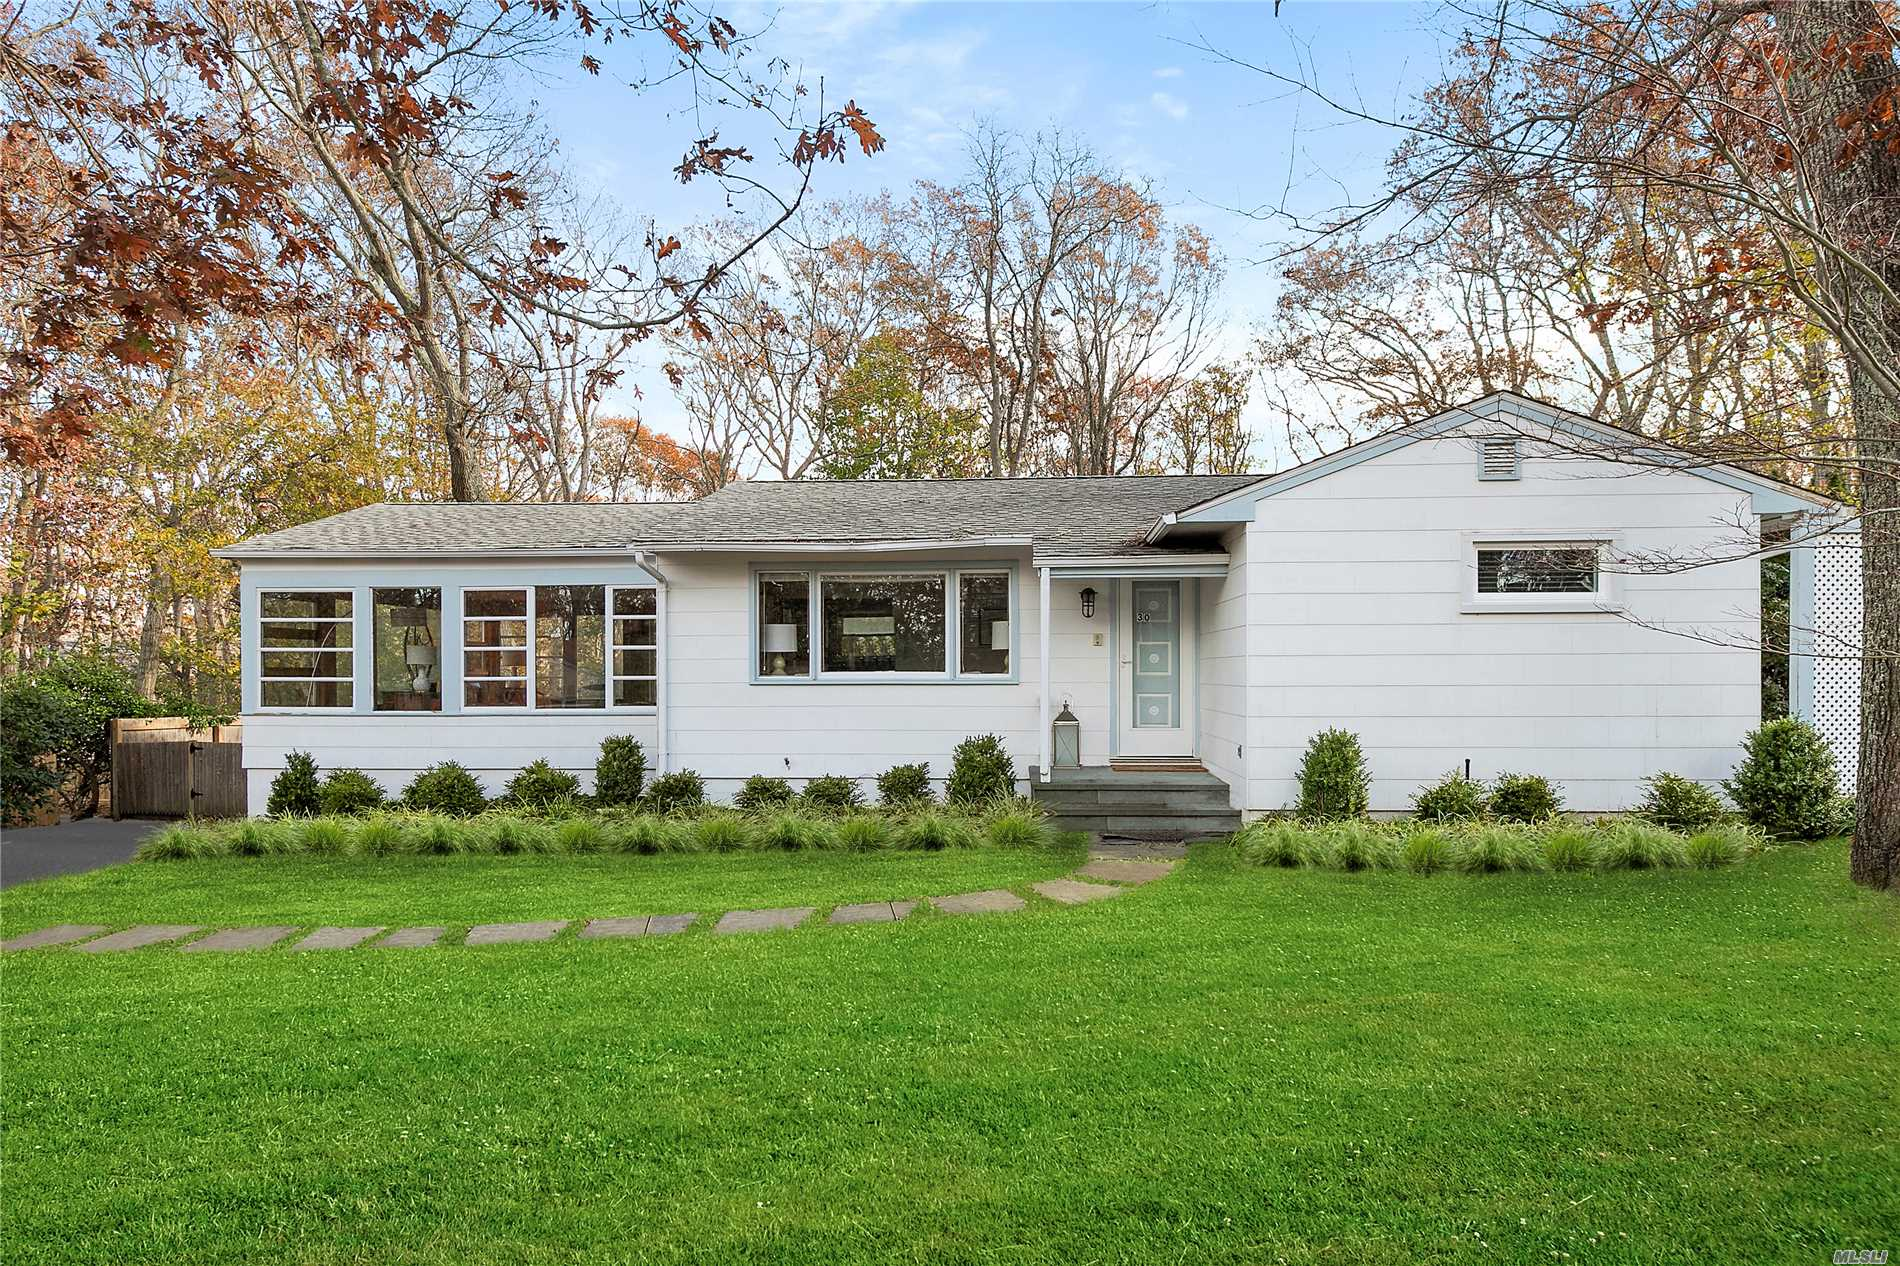 Photo of home for sale at 30 Milton Ave, Sag Harbor NY